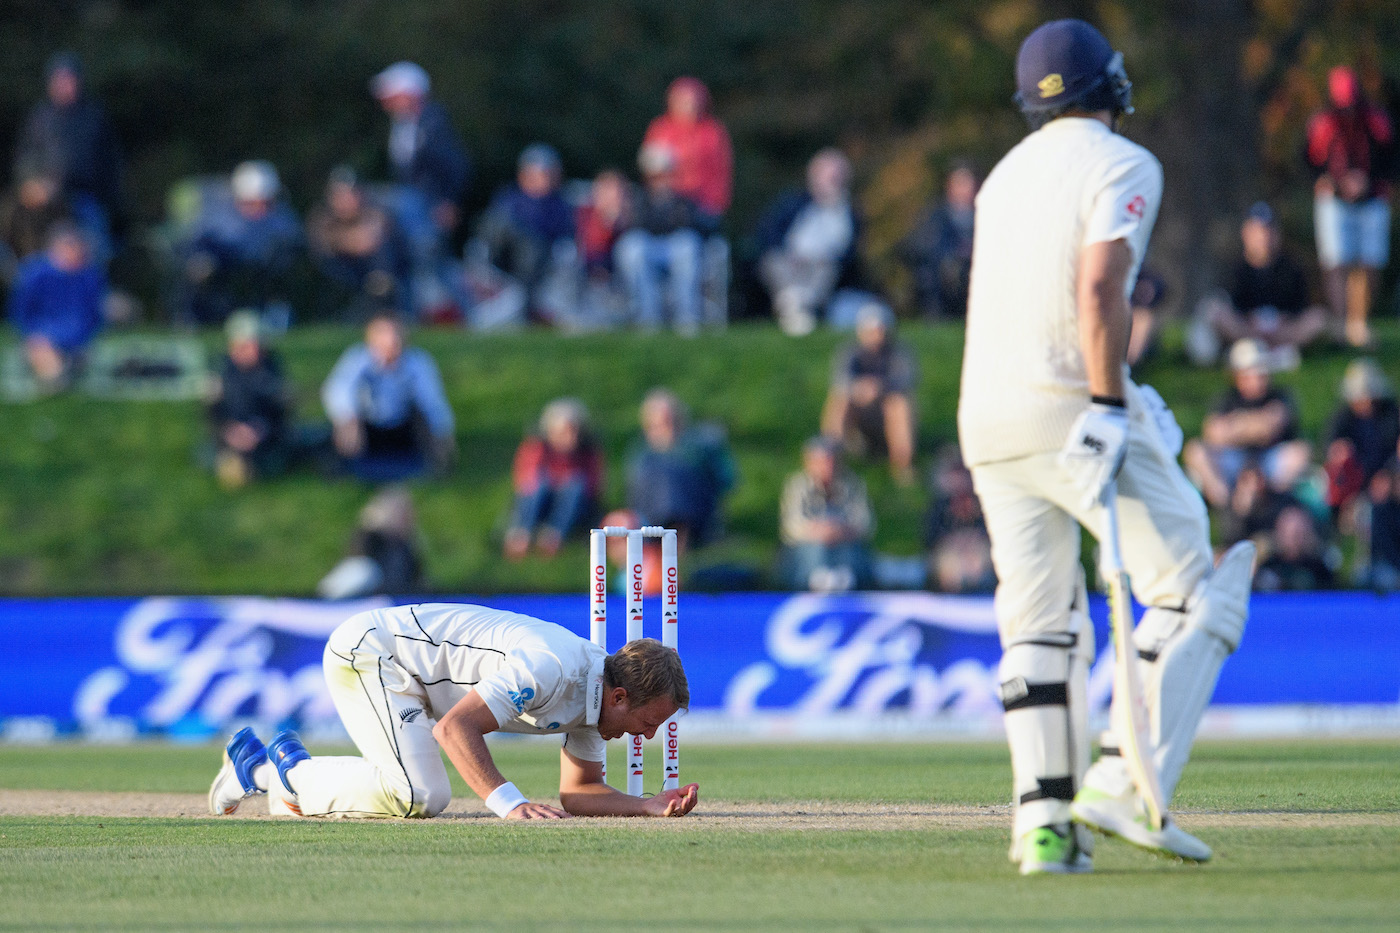 New Zealand have some of the best fielding in cricket because they don't want to provoke this reaction from Wagner